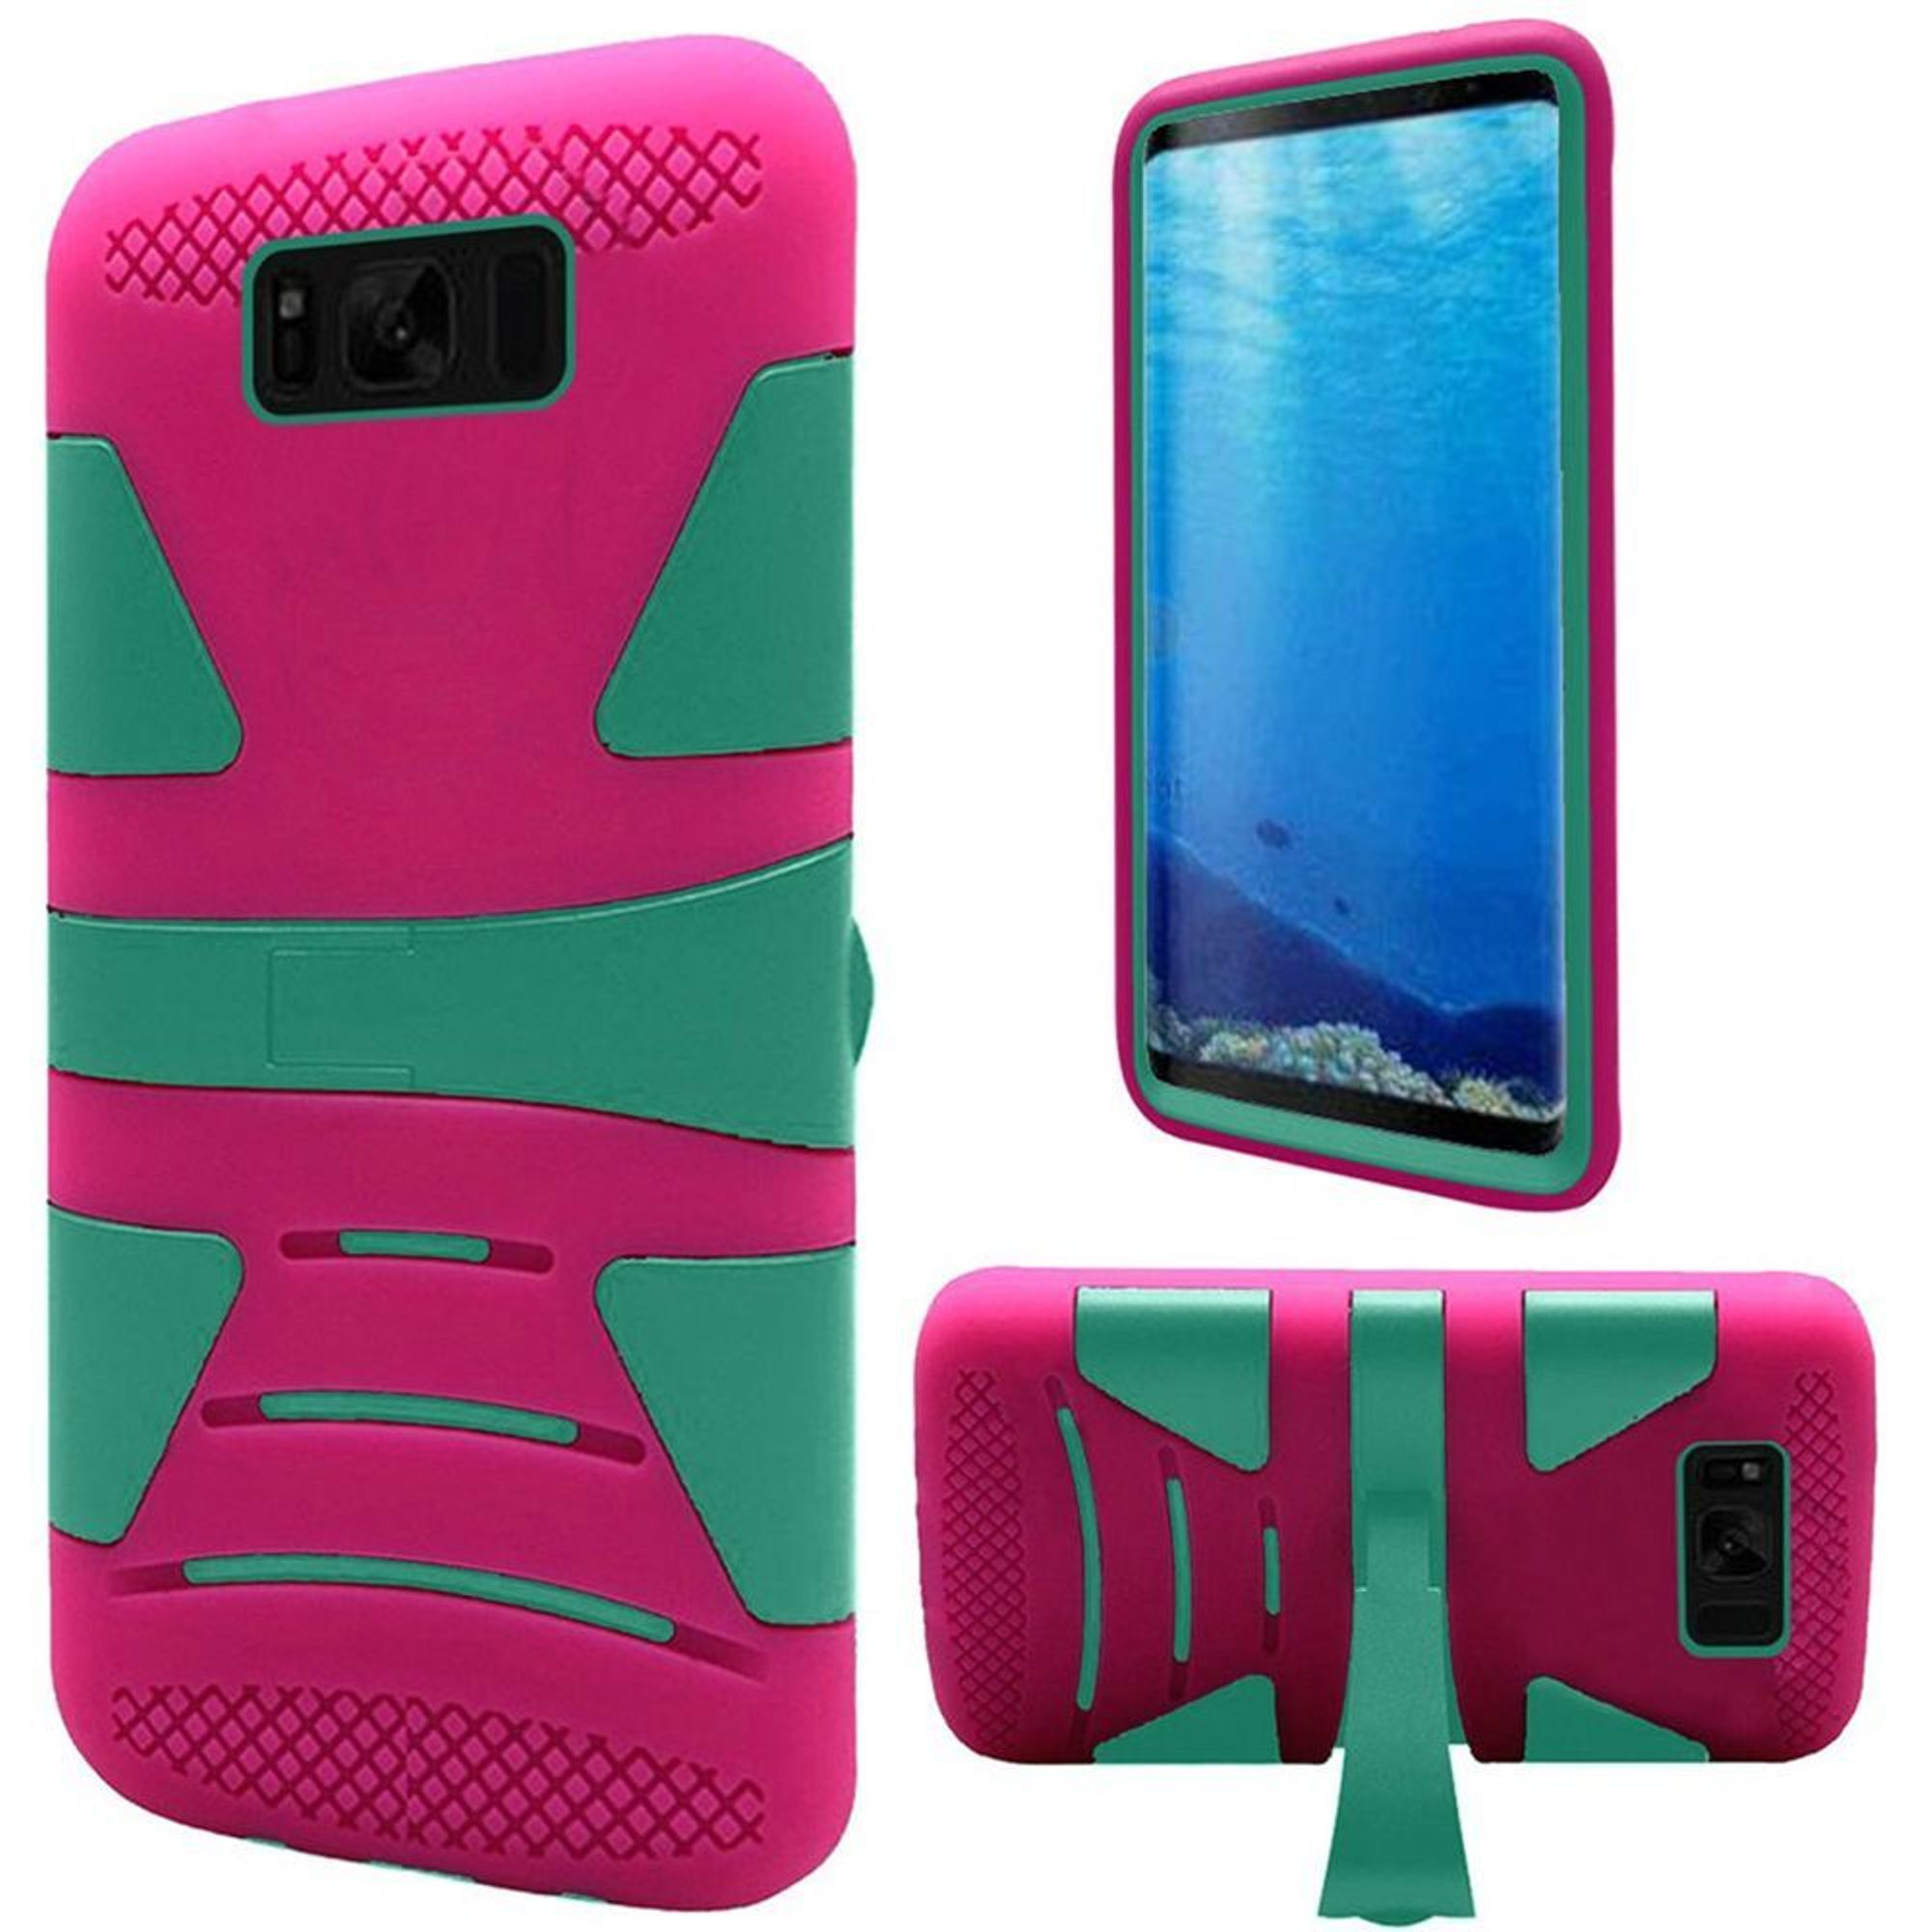 Samsung Galaxy S8 Case, by HR Wireless Dual Layer Hybrid Stand Hard Plastic/Soft TPU Rubber Case Phone Cover For Samsung Galaxy S8, Teal/Hot Pink